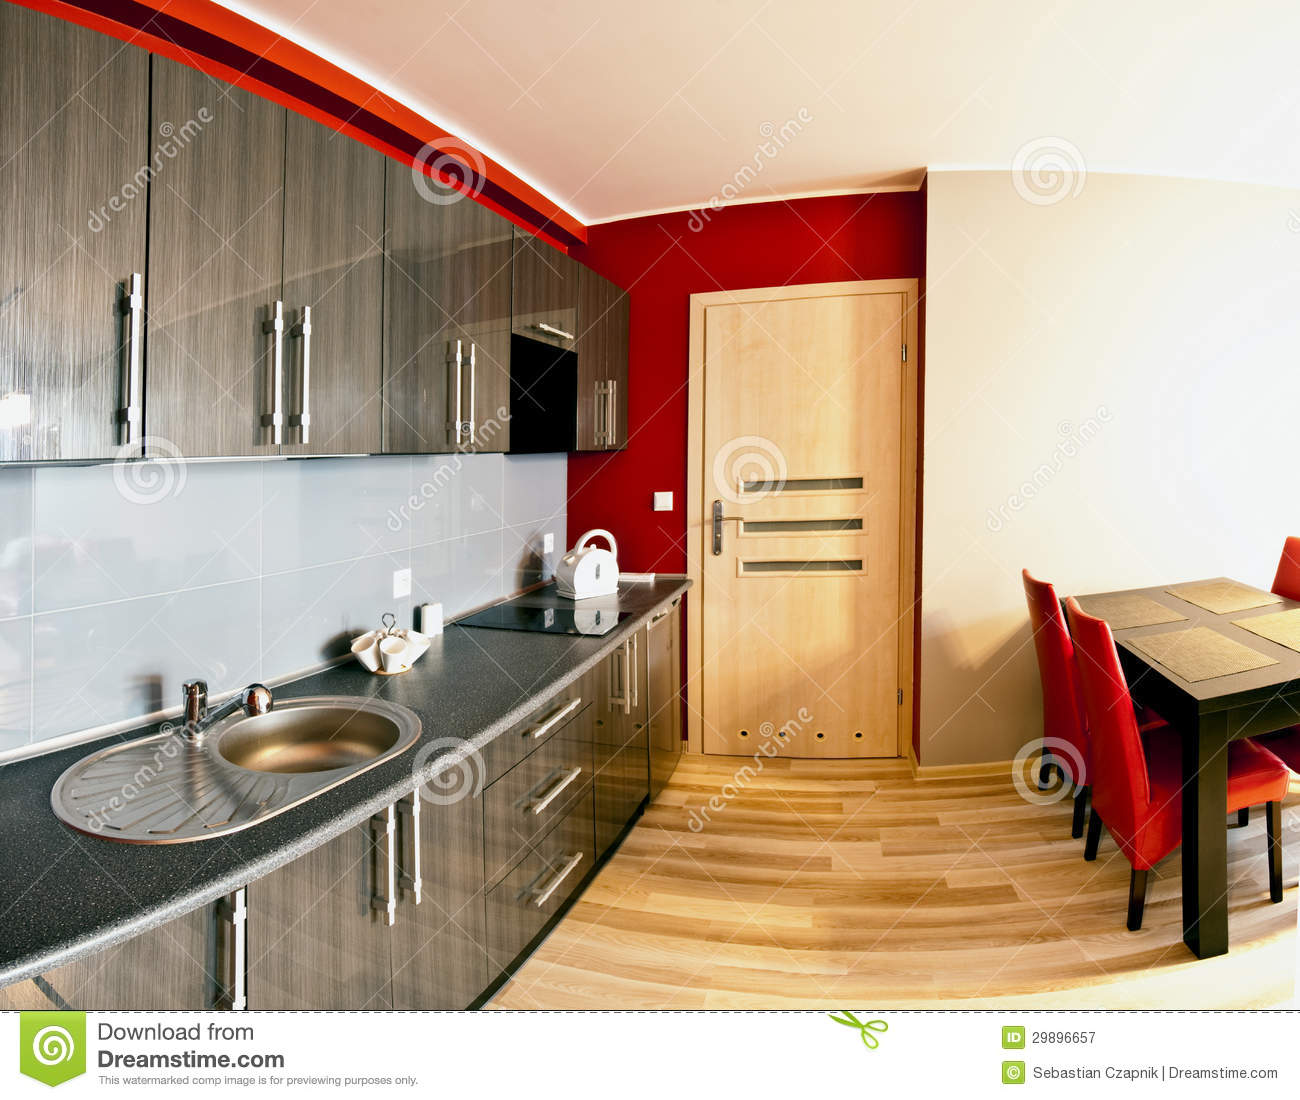 Combined Kitchen And Dining Room Royalty Free Stock  : modern combined kitchen dining room polished wooden floor table chairs cupboards sink mixer tap work top 29896657 from dreamstime.com size 1300 x 1100 jpeg 162kB